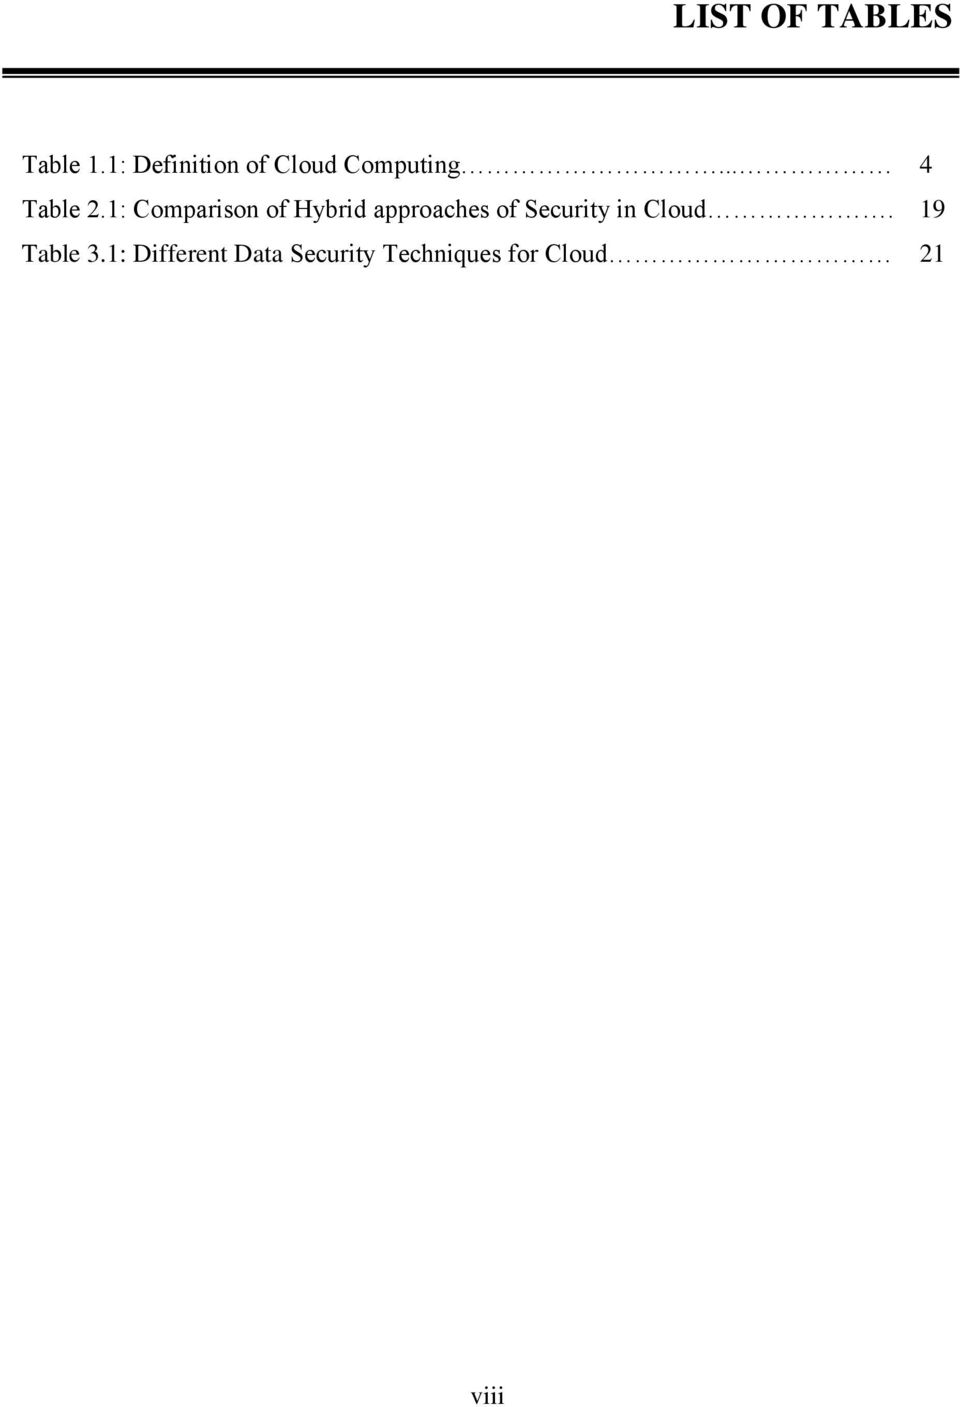 1: Comparison of Hybrid approaches of Security